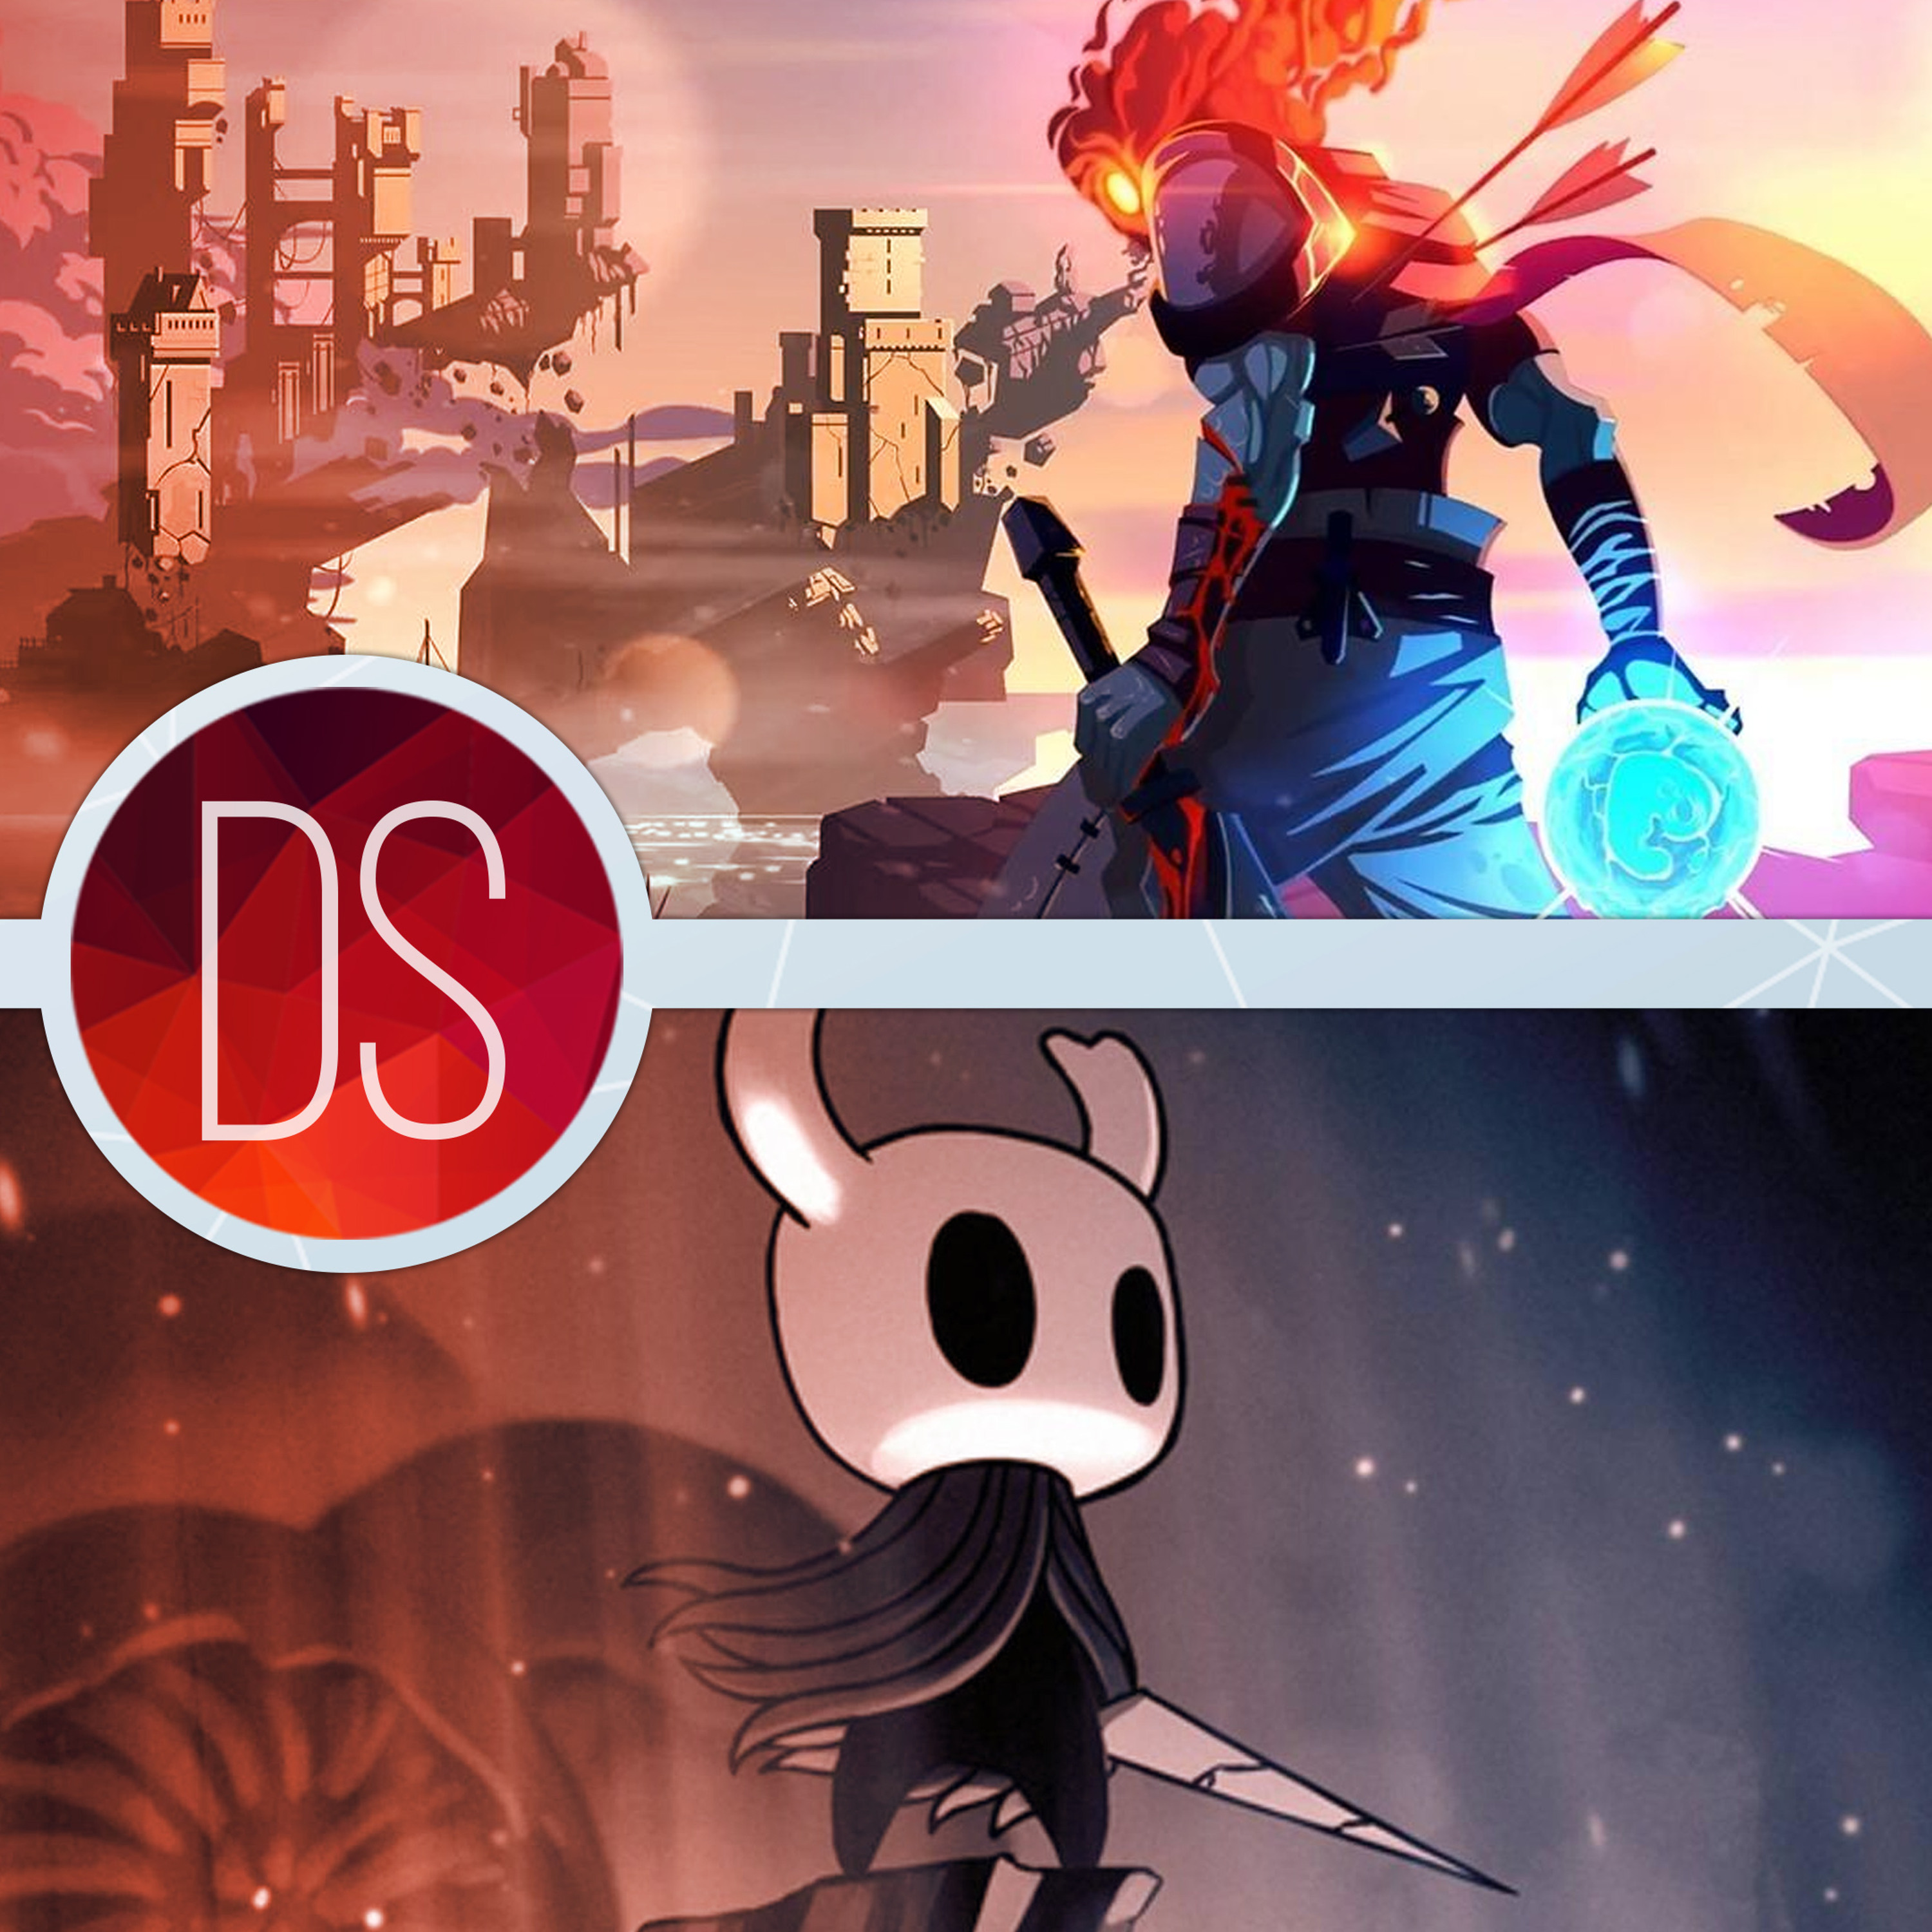 S2E2: Hollow Knight, Card Games, Knightmare